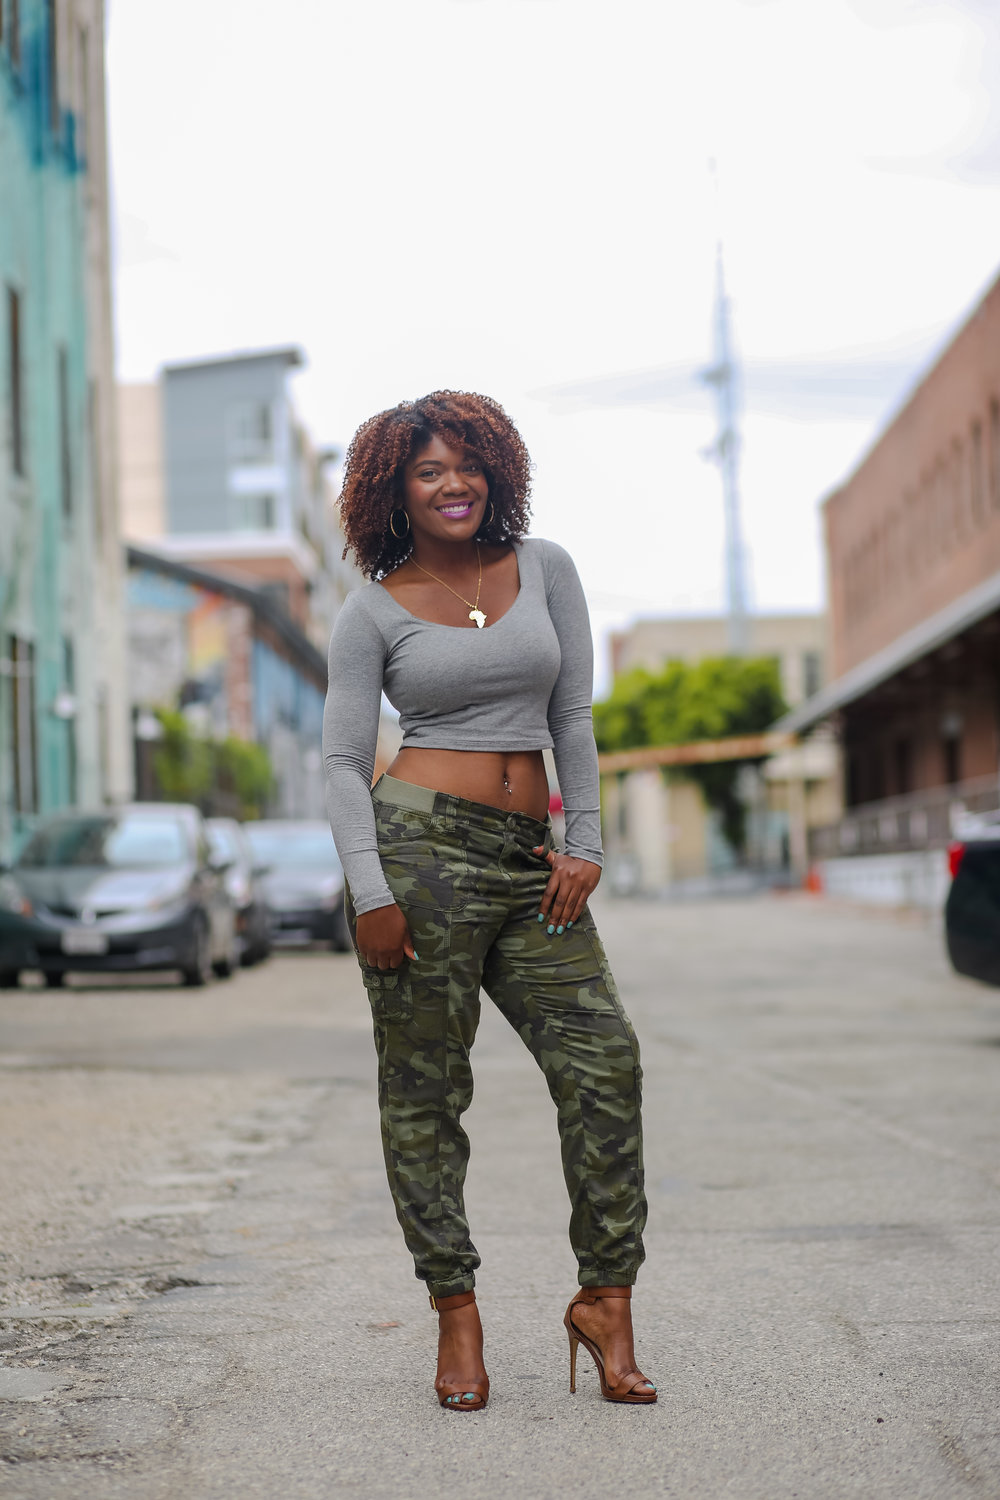 picture Outfits with Camo Pants-23 Ways To Wear Camo Pants Stylishly